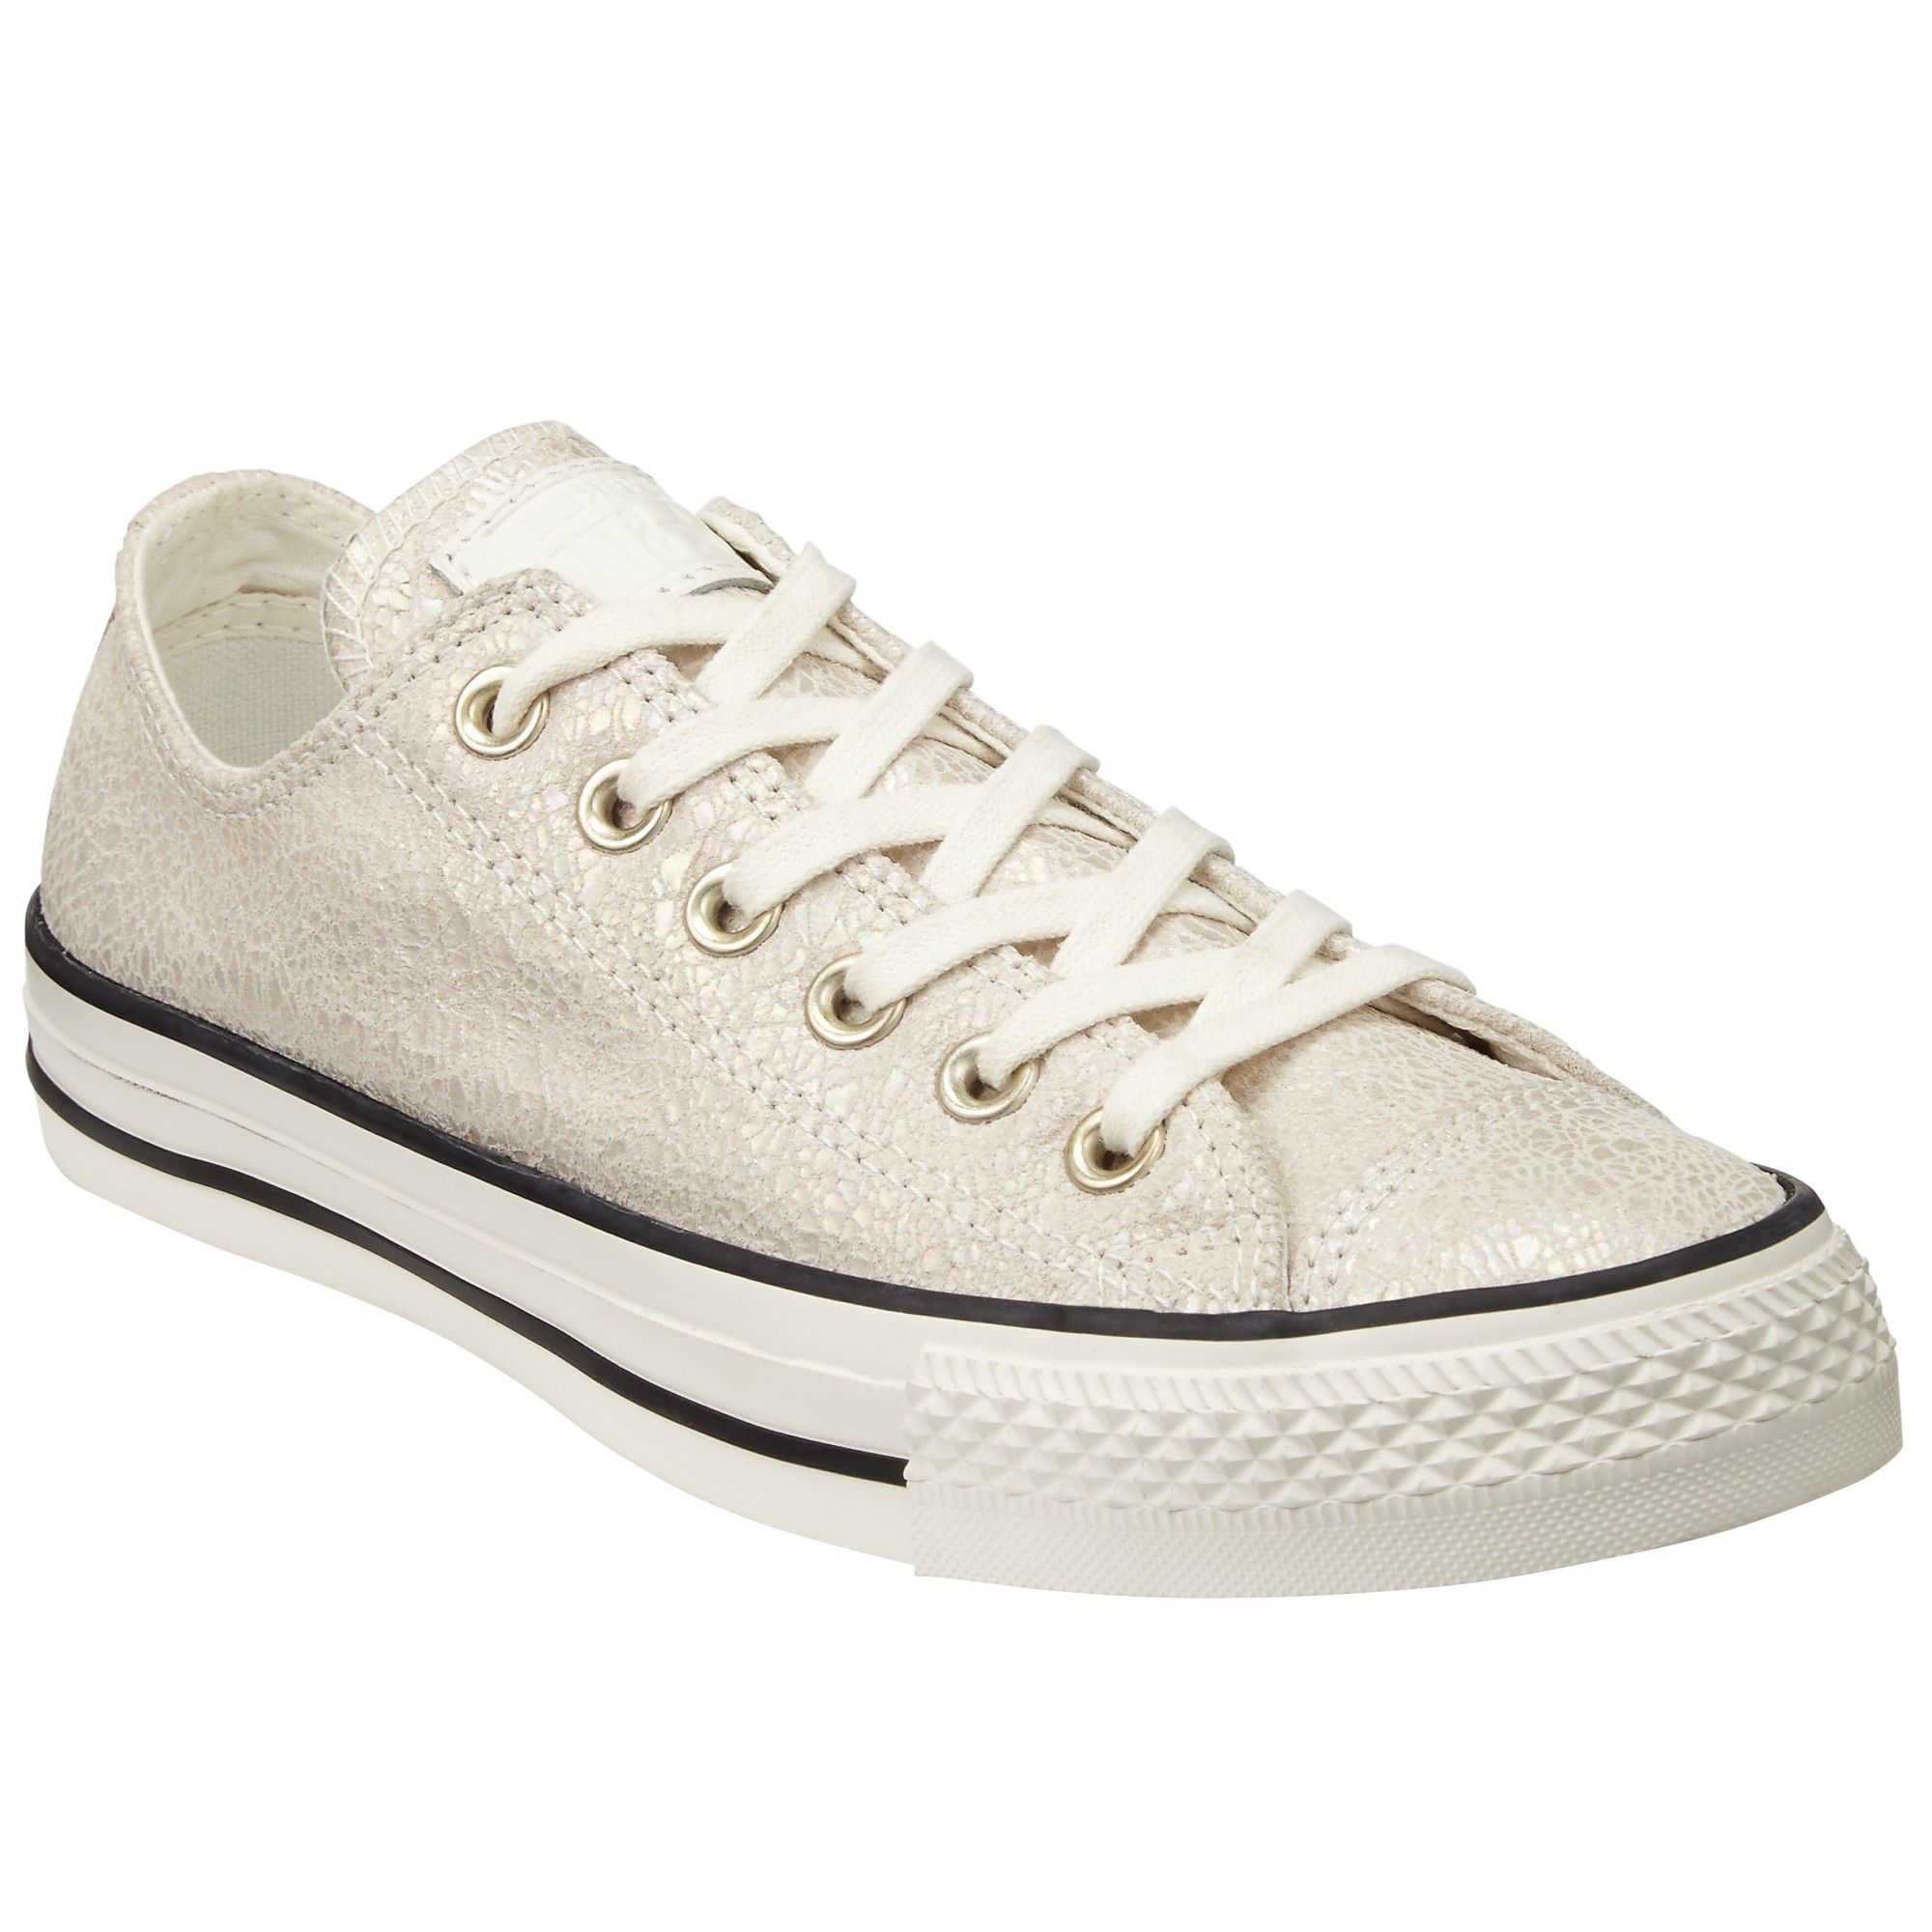 Converse Chuck Taylor All Star Ox Oil Slick Trainers In